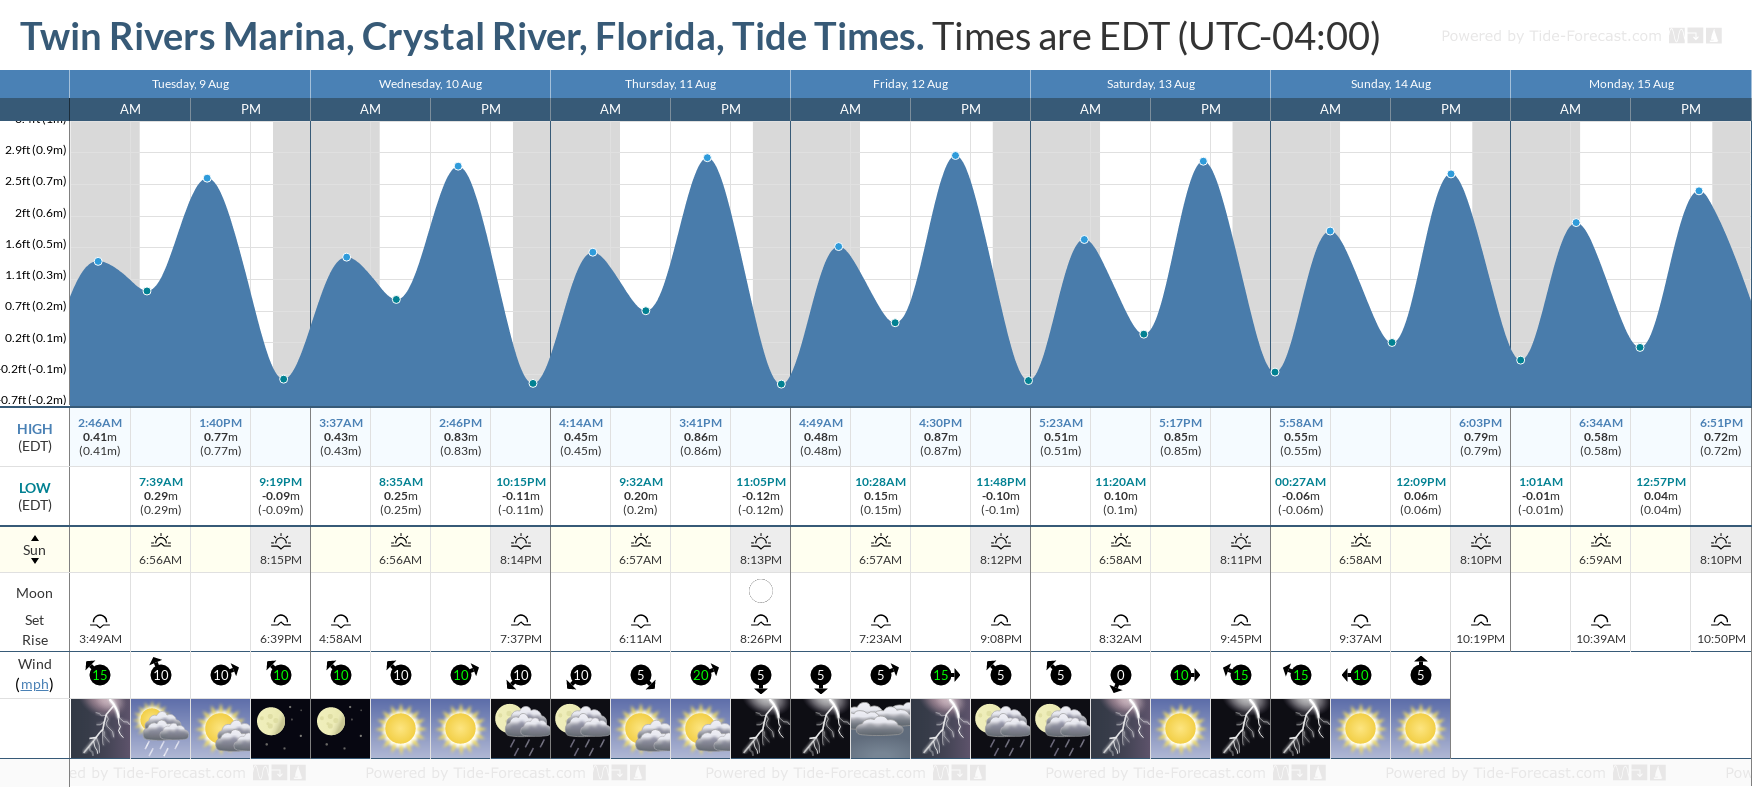 Twin Rivers Marina, Crystal River, Florida Tide Chart including high and low tide tide times for the next 7 days